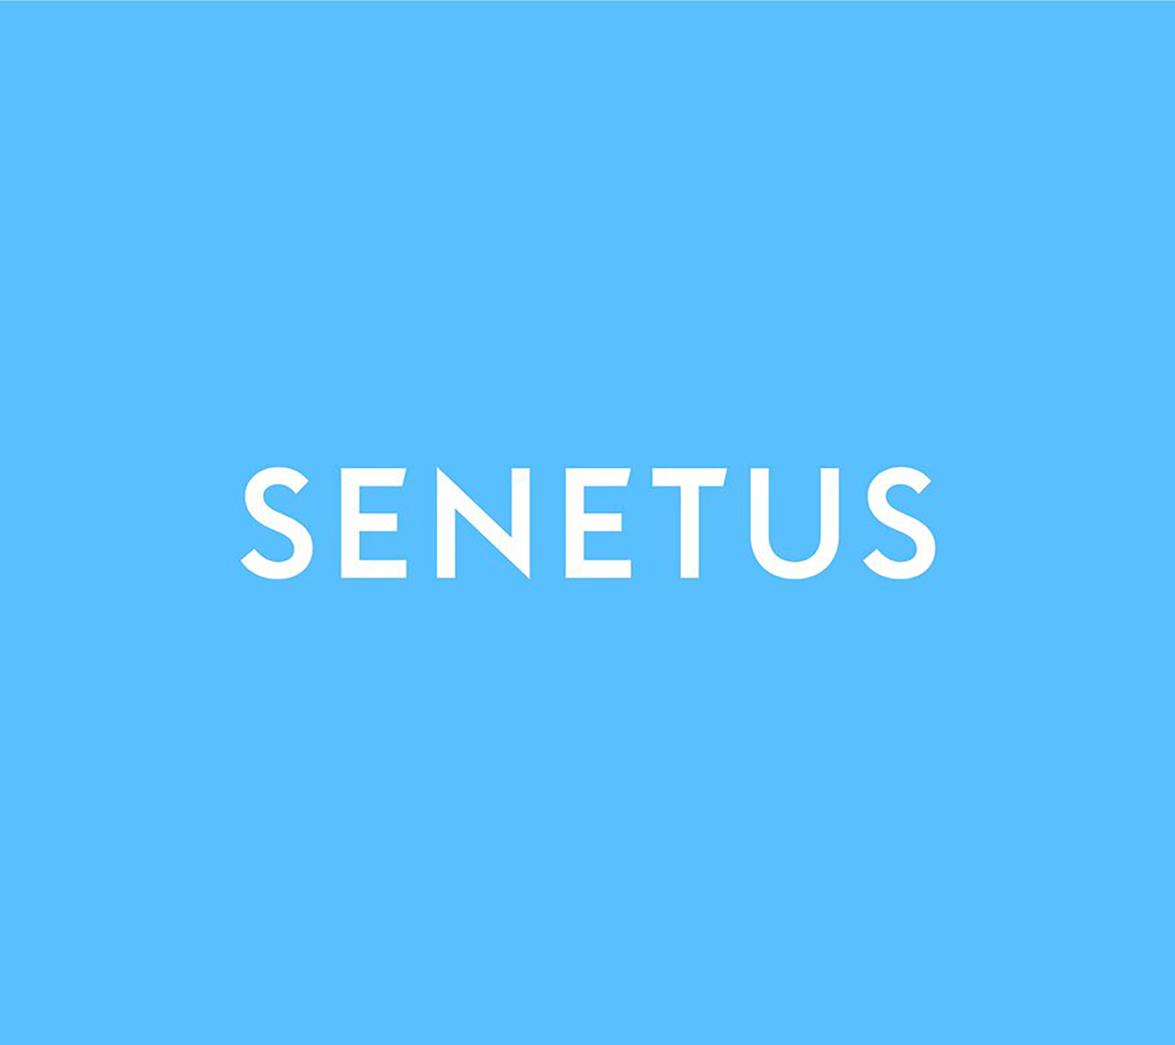 Secondary logo design for startup brand Senetus, designed by White Bear Studio